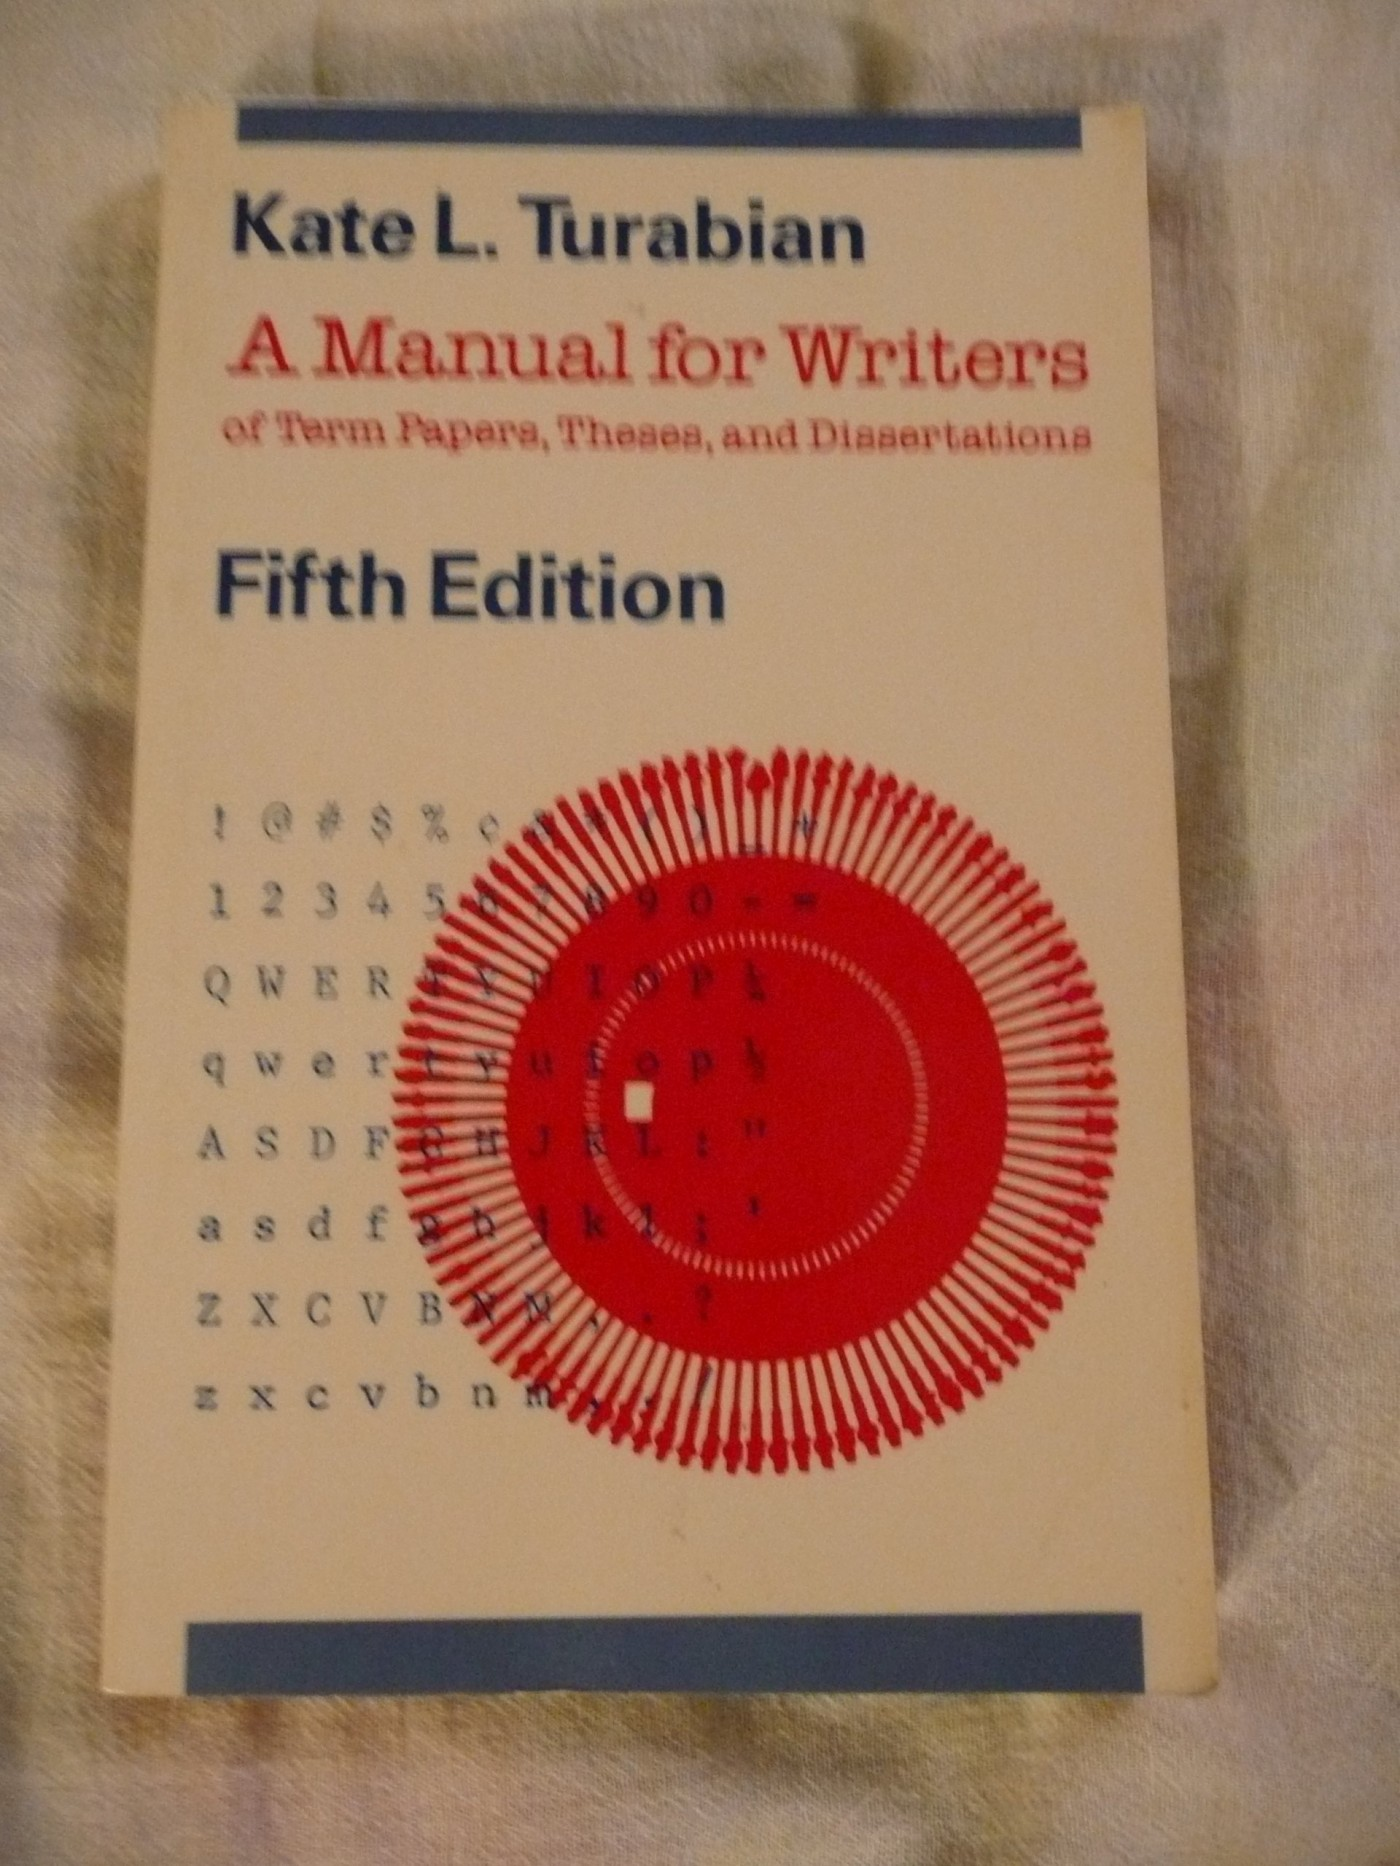 020 91nltv7olql Research Paper Manual For Writers Of Papers Theses And Sensational A Dissertations Ed. 8 8th Edition Ninth Pdf 1400